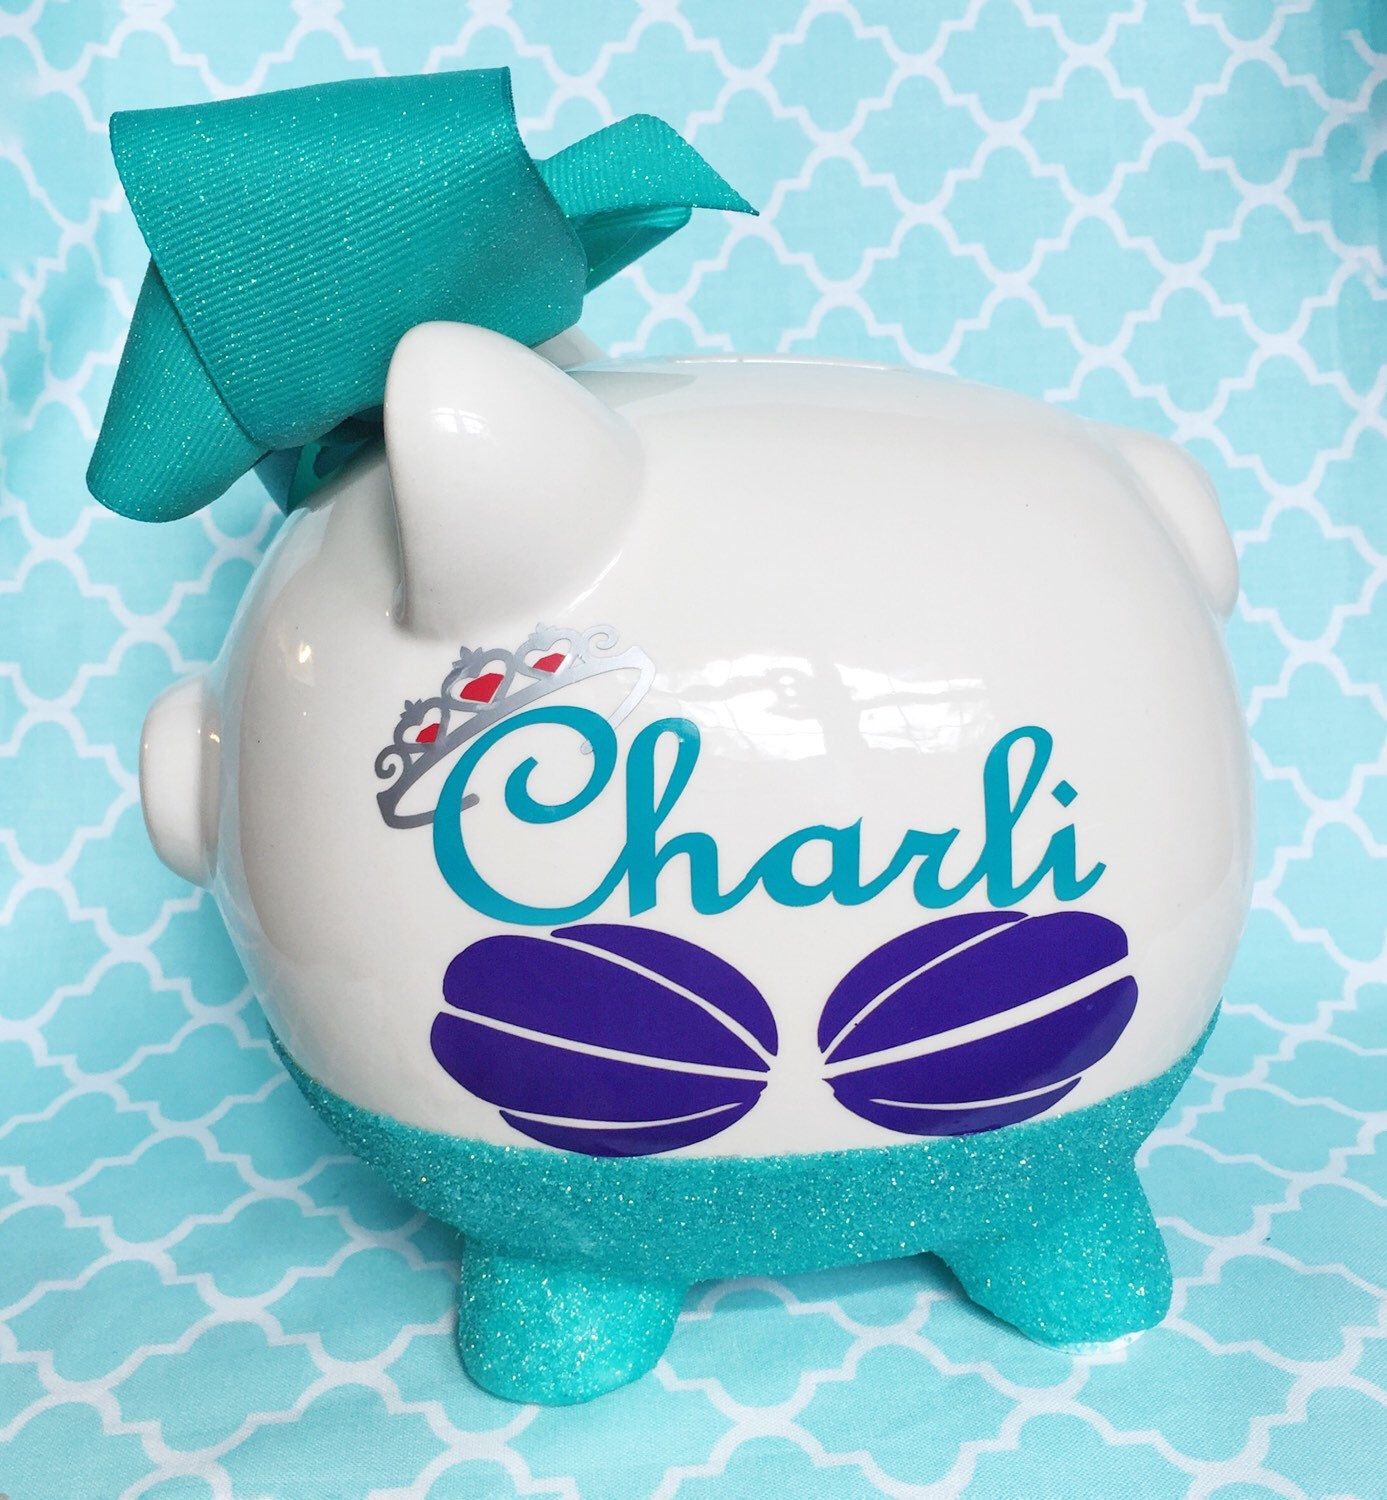 Piggy bank glitter piggy bank personalized piggy bank piggy bank glitter piggy bank personalized piggy bank mermaid piggy bank baby shower gift personalized gift keepsake gift coin by negle Choice Image